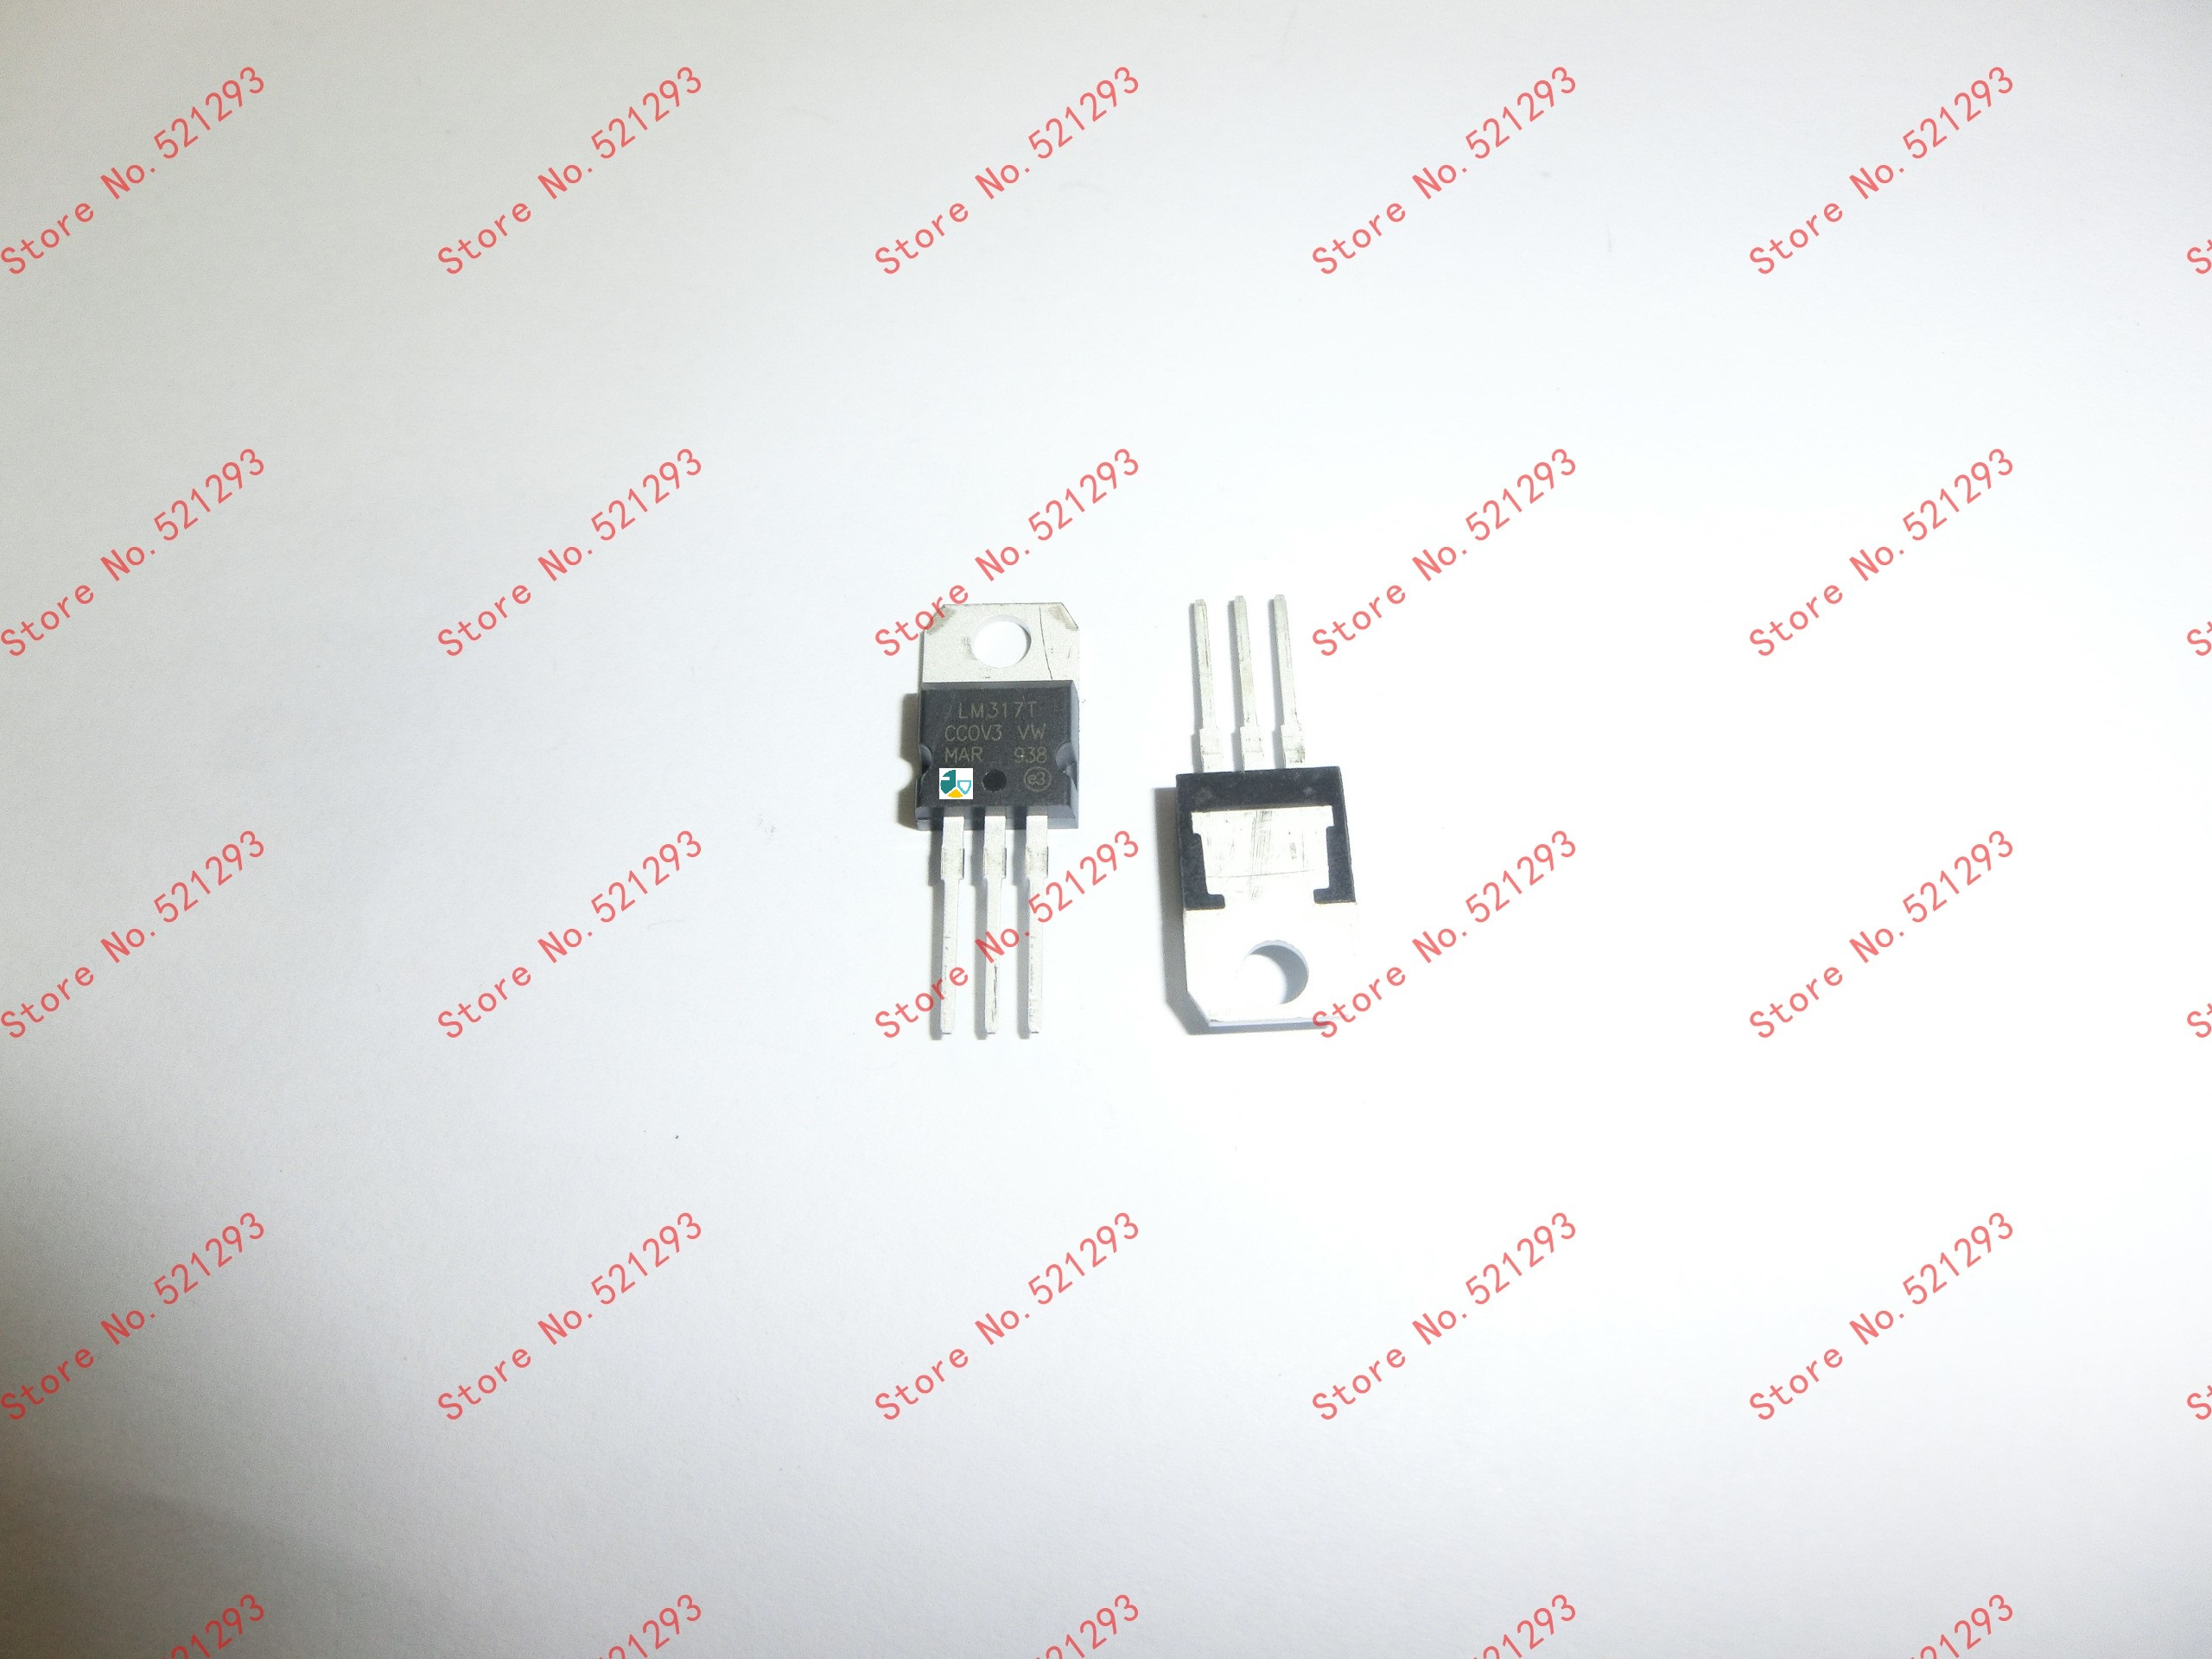 Buy Lm317t Circuits And Get Free Shipping On